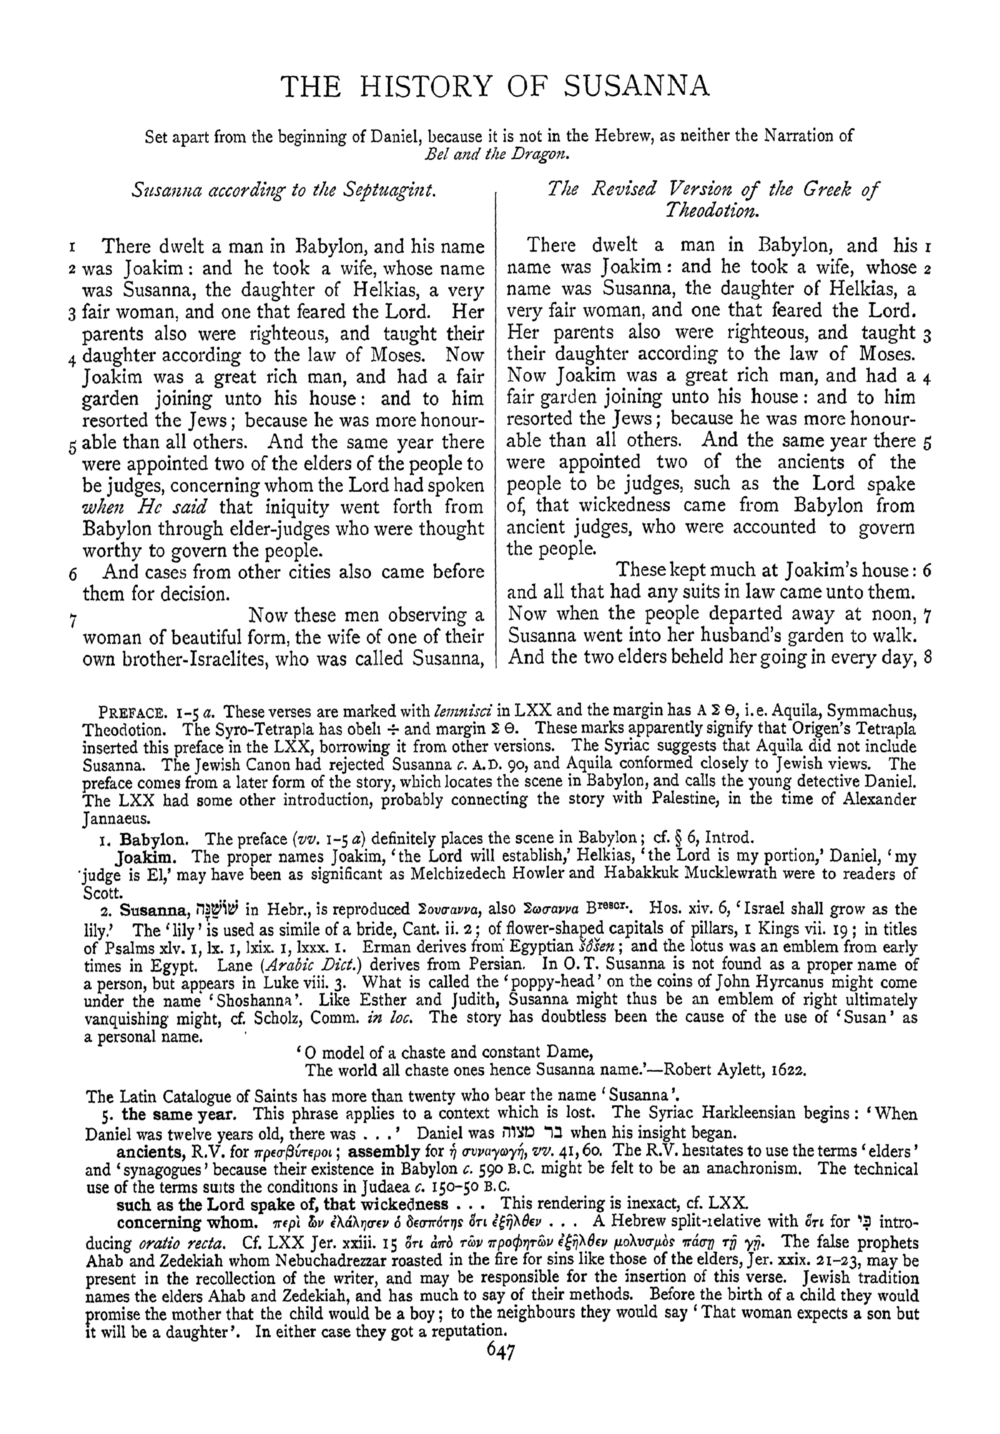 Image of page 647